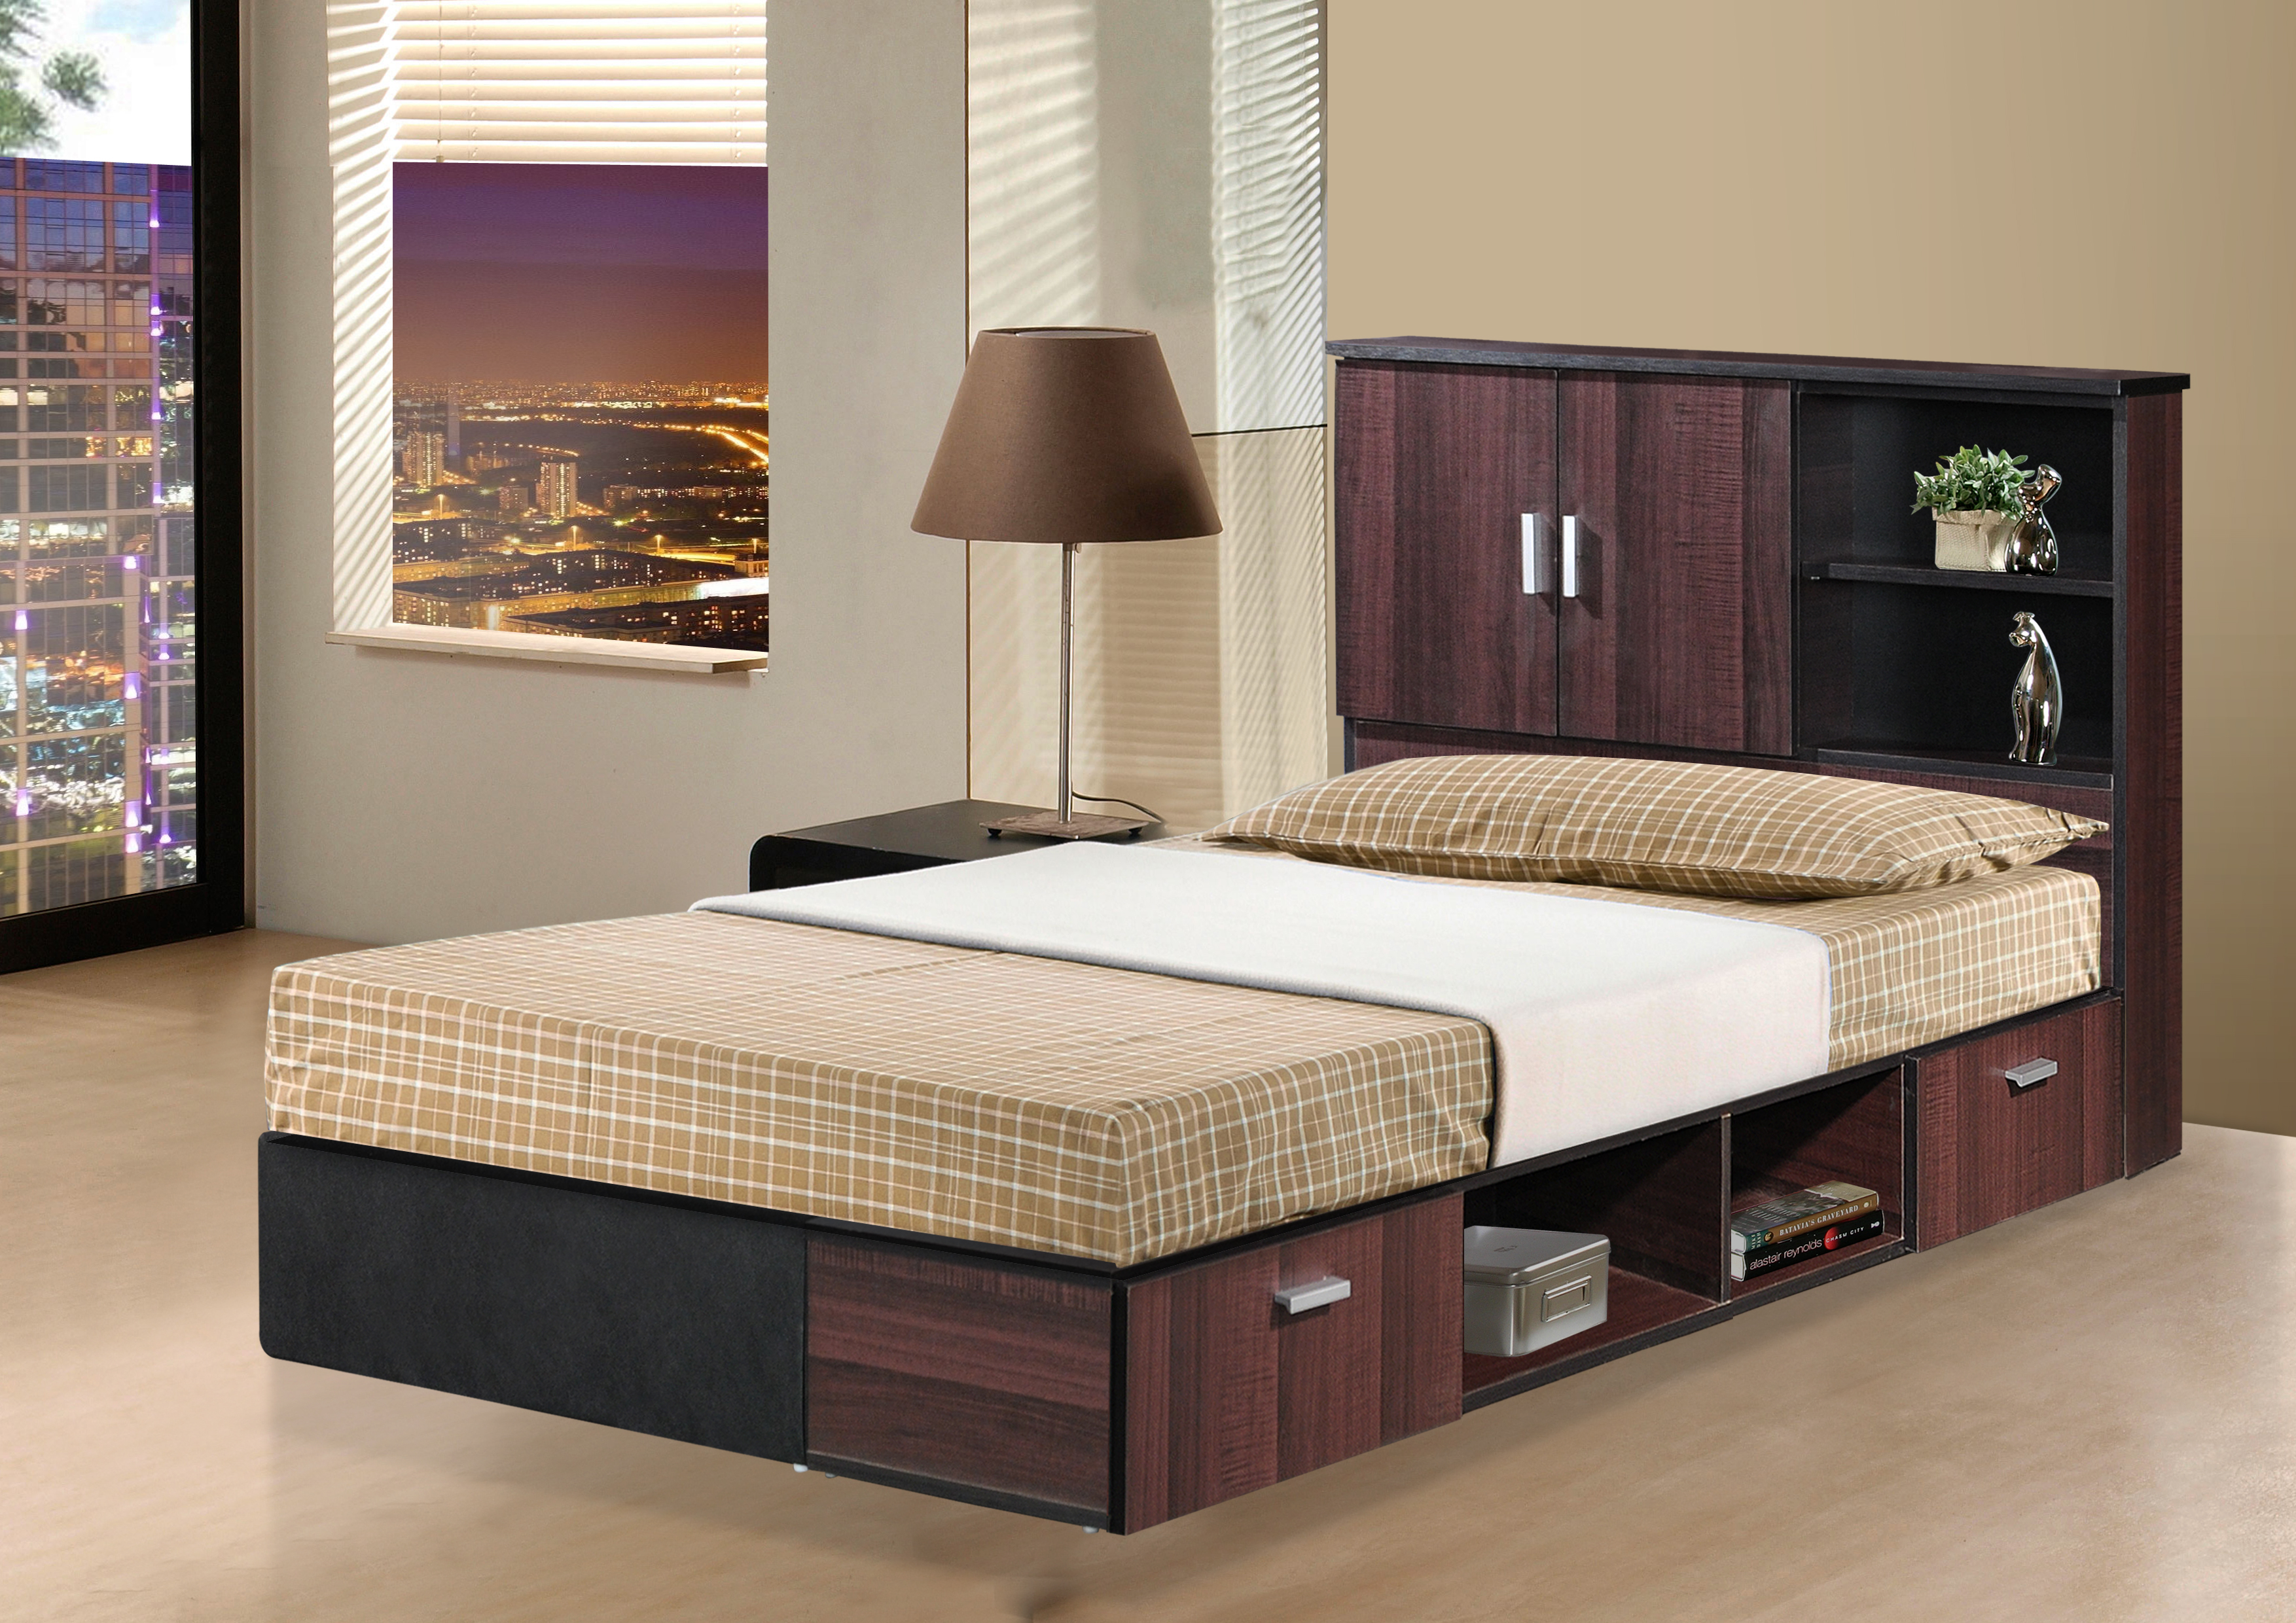 nonsmoking room bed min single rooms